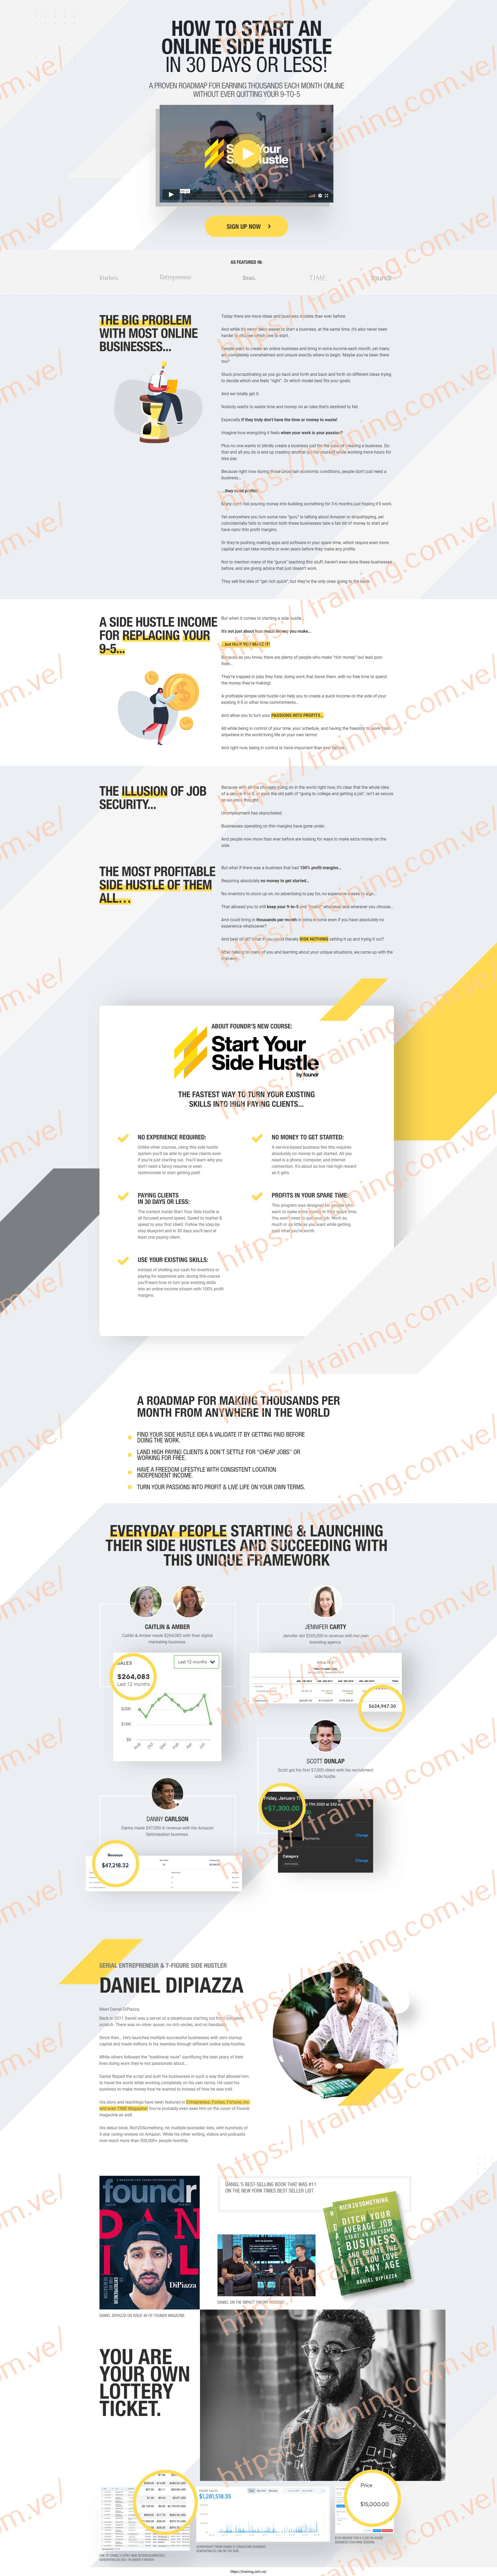 Start Your Side Hustle by Daniel DiPiazza Sale Page